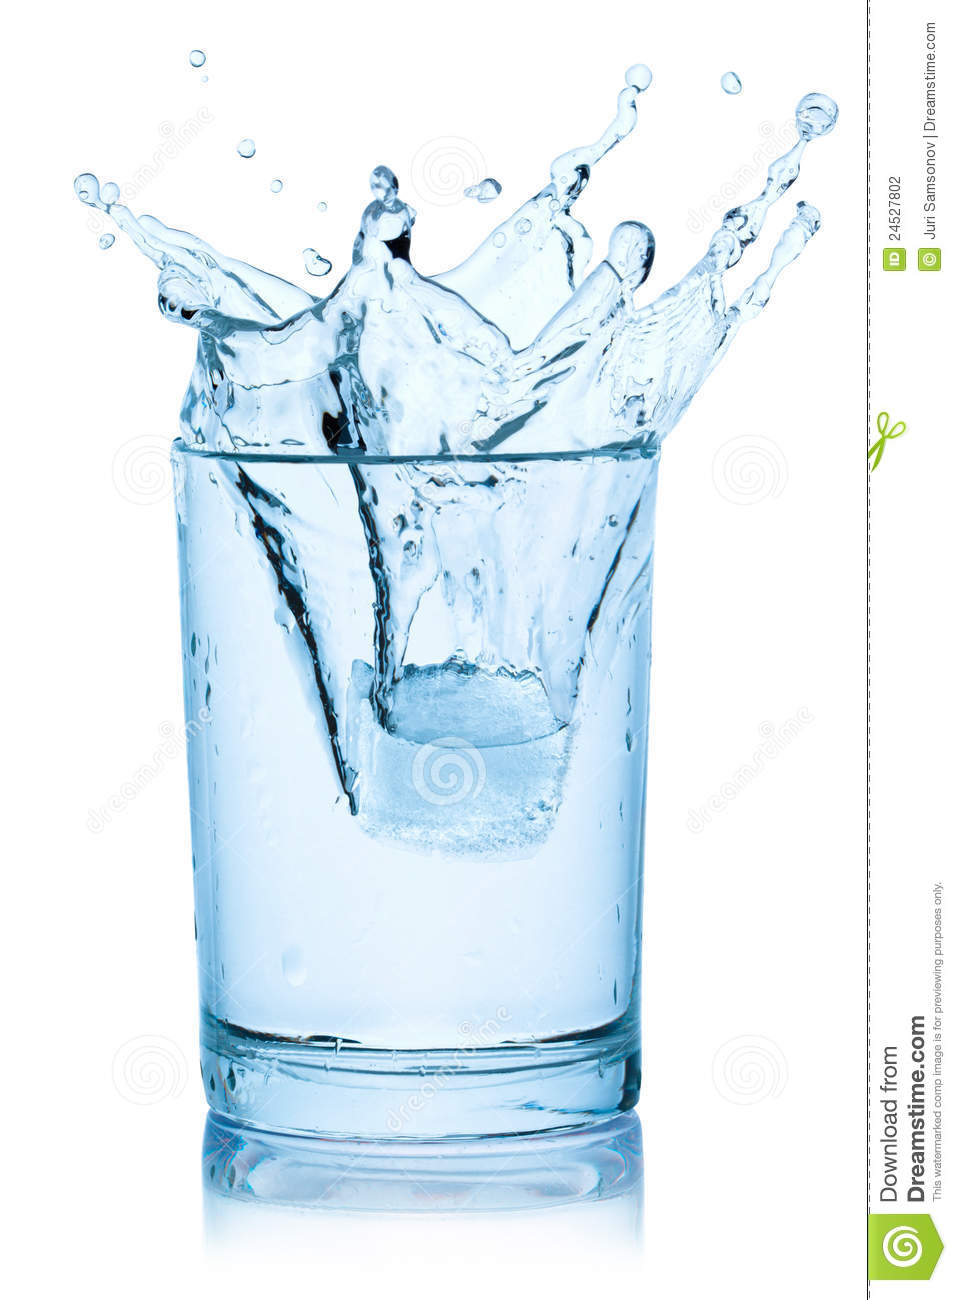 Splash From Ice Cube In A Glass Of Water. Stock Photography - Image ...